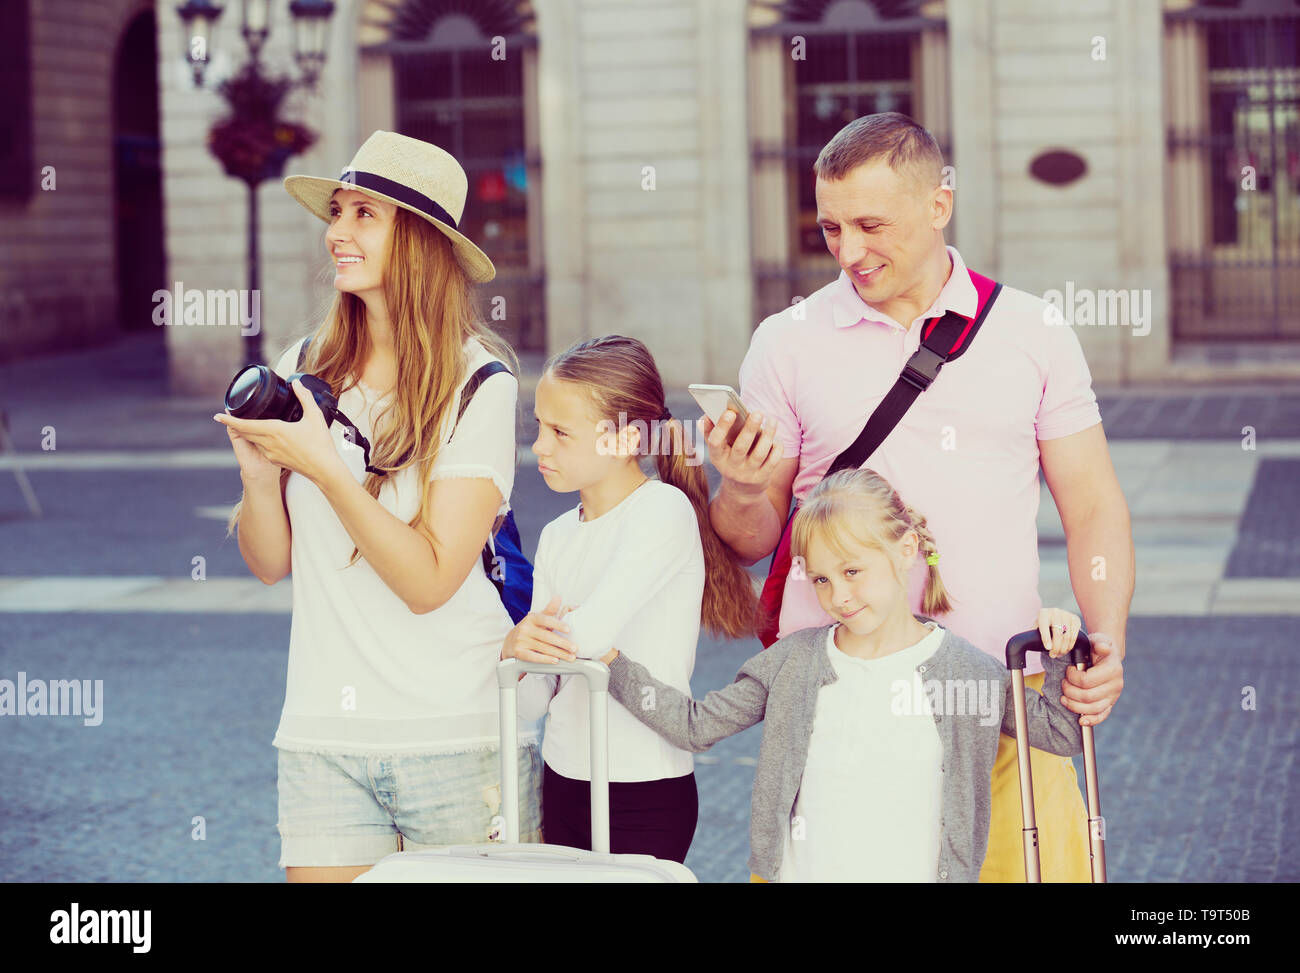 Cheerful parents with two kids using smartphone and photographing sights during their travel - Stock Image